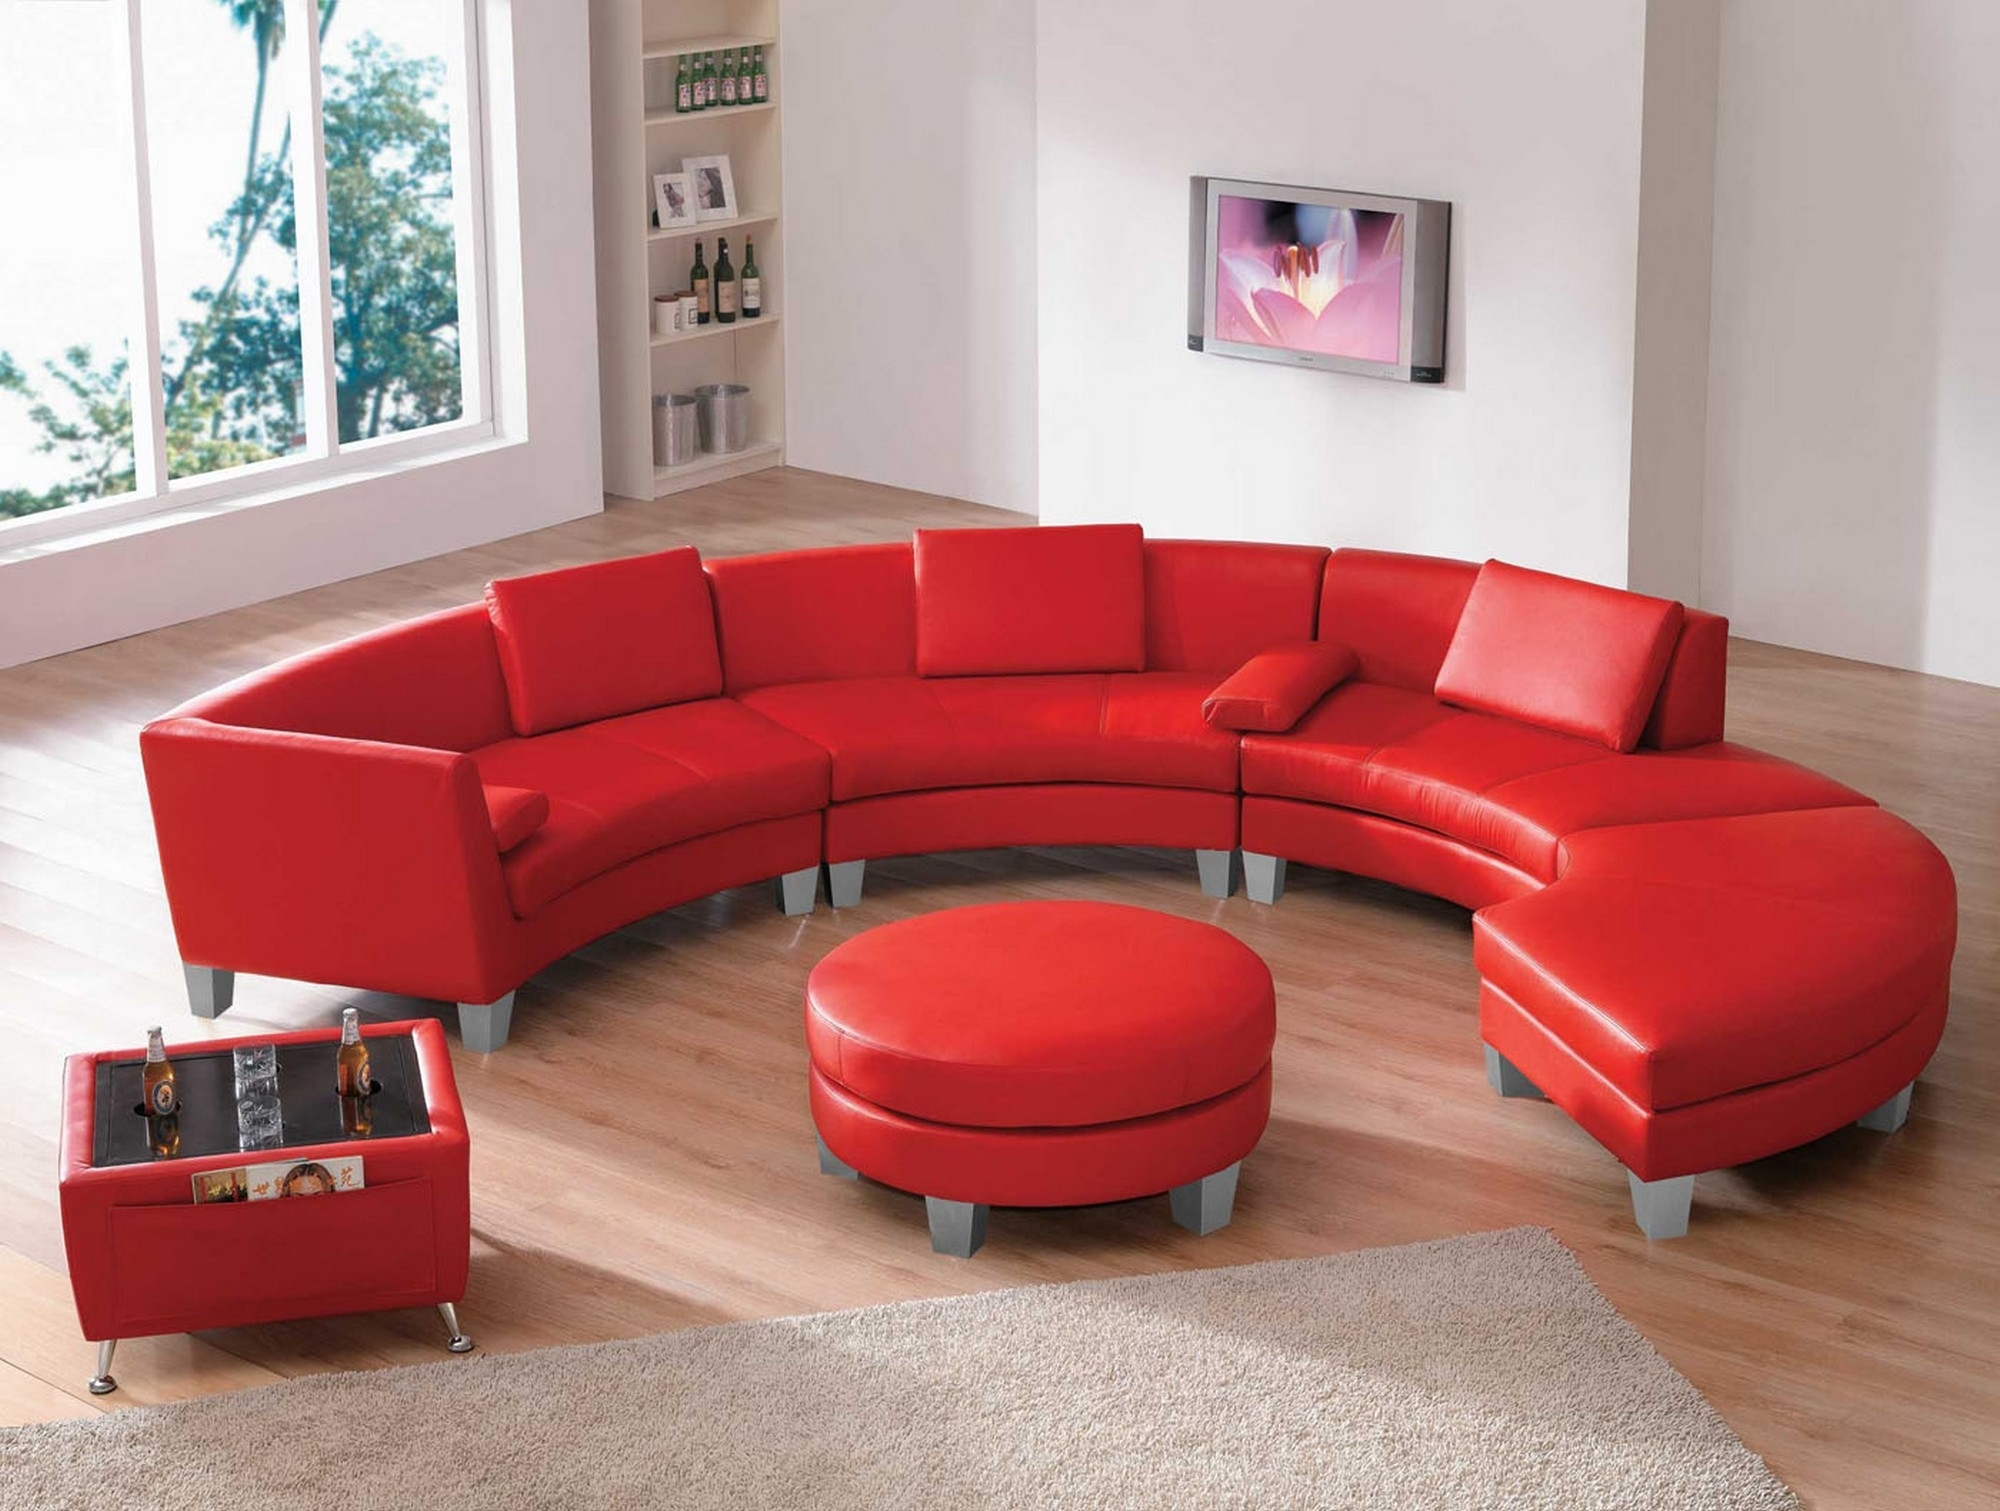 Sofa: Modern Living Room With Leather Sofa Interior Design Leather intended for Red Leather Sectional Sofas With Ottoman (Image 15 of 15)